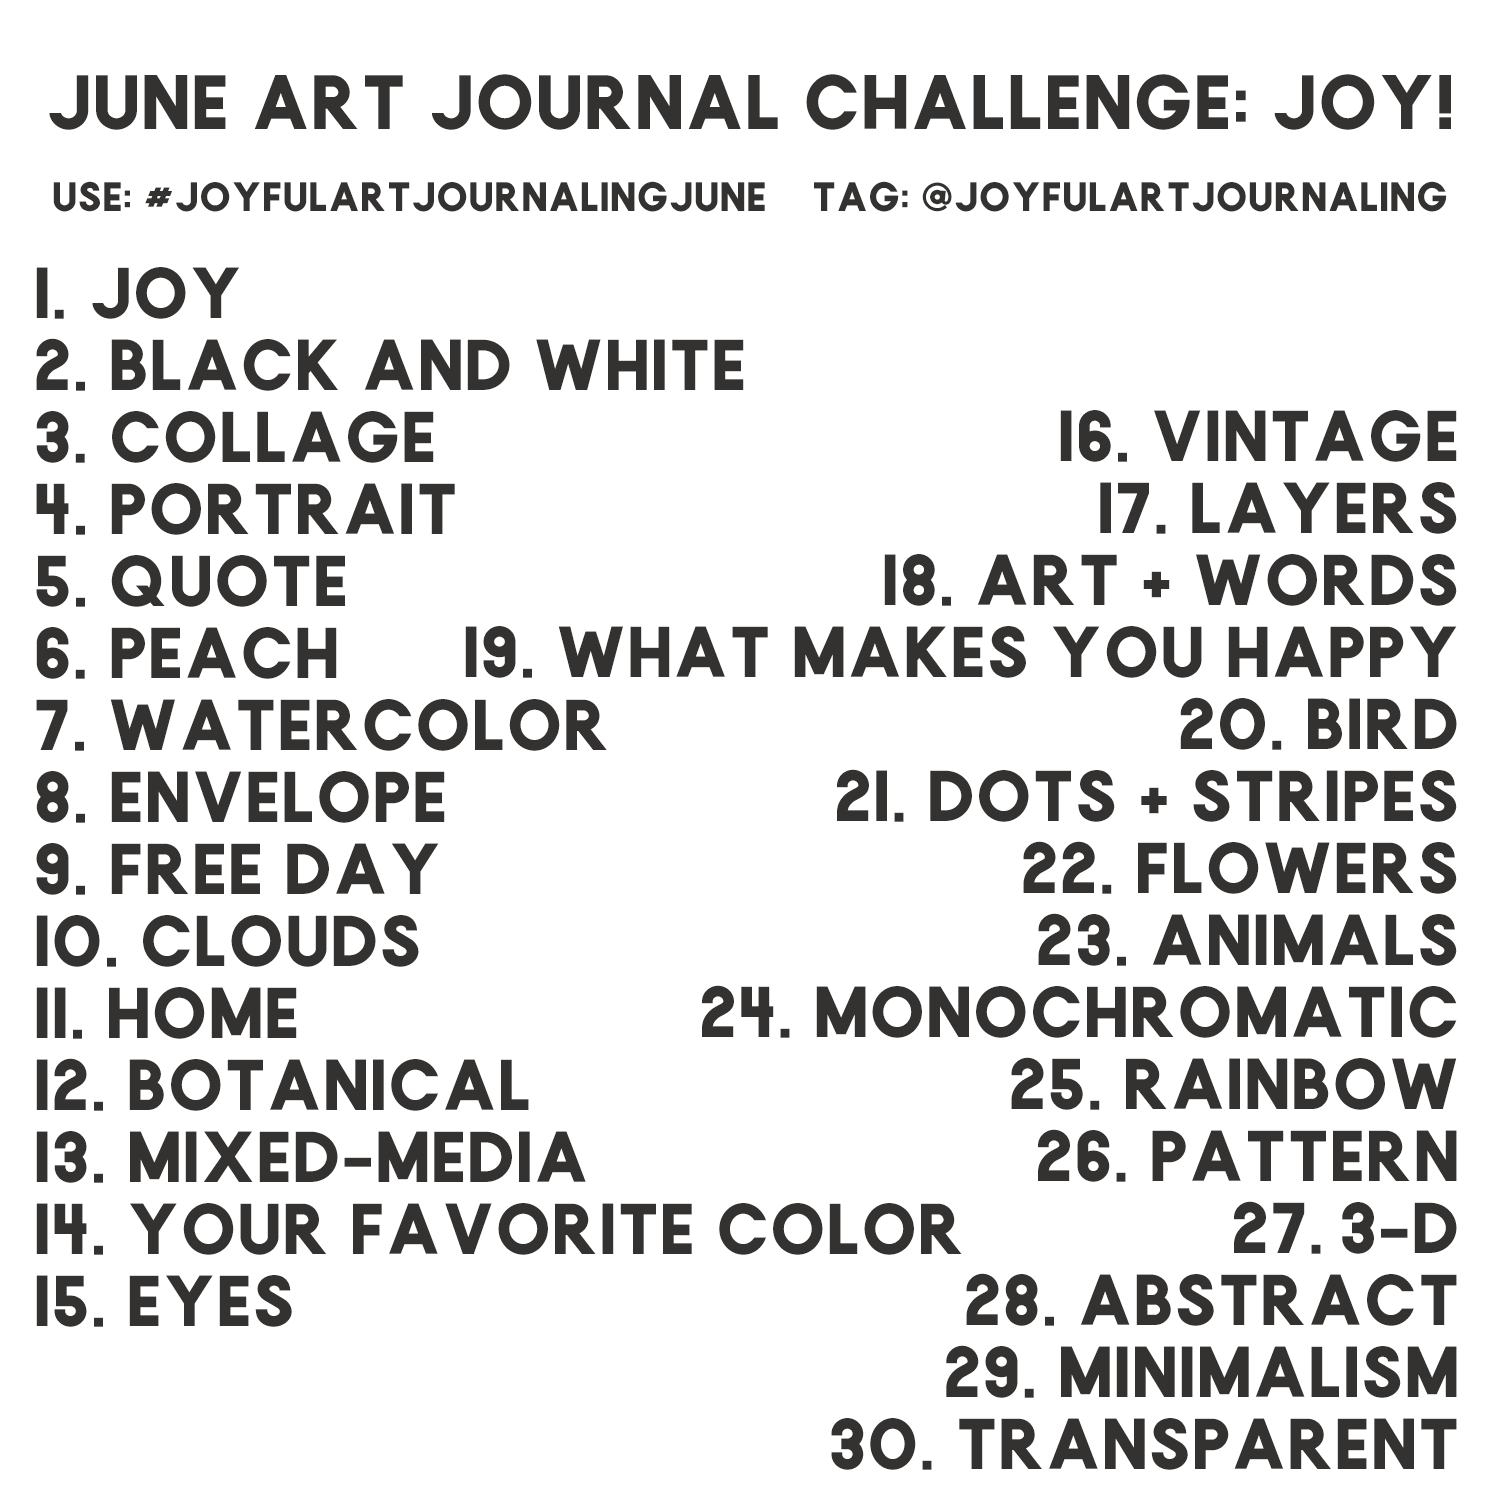 Join our 30 day art journal challenge to bring more JOY into your life, and the world, through art journaling! These 30 daily art journaling prompts are included as a creative guide. #joyfulartjournaling